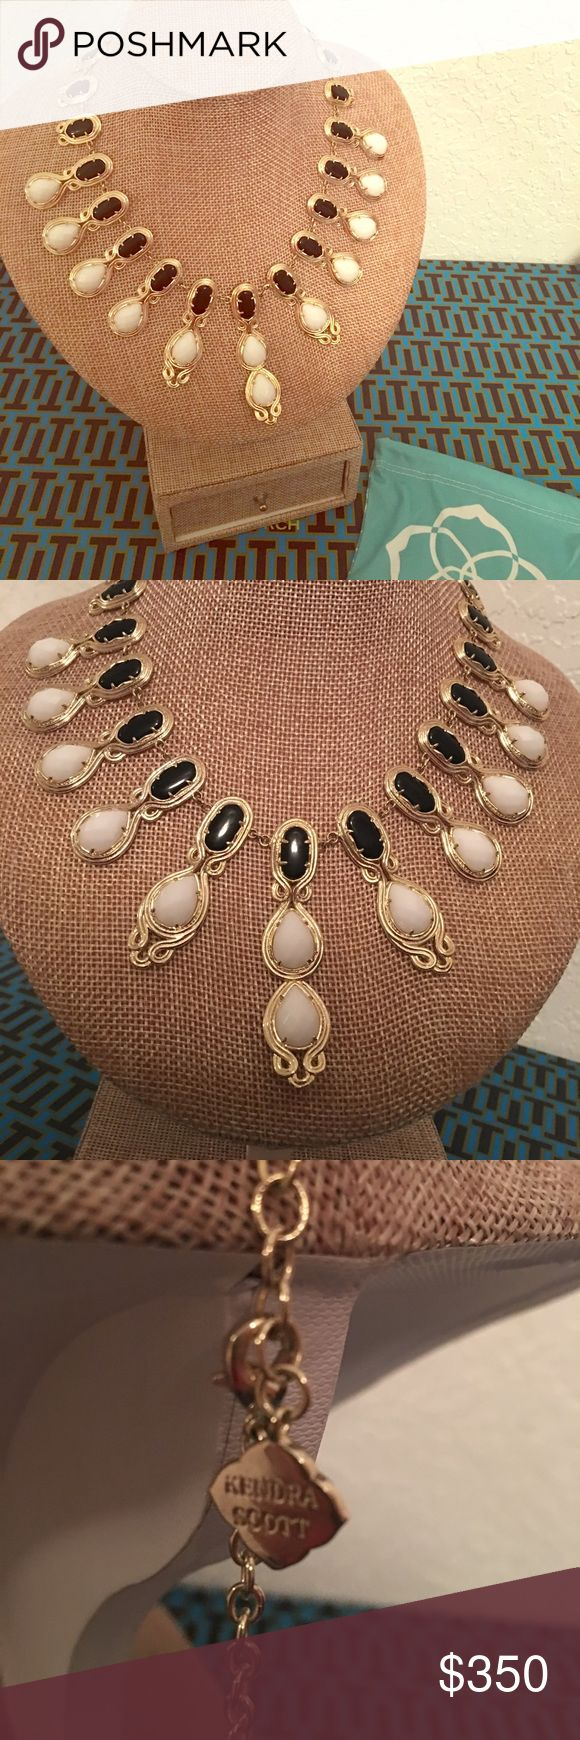 Kendra Scott Rare Whitney Tapered Station Necklace Kendra Scott Rare Whitney Tapered Station Necklace. 14-karat gold-plated brass. Stone colors: Black oval stations with scroll details. Tapered white enamel drops, Lobster clasp. Includes dust bag and necklace. Kendra Scott Jewelry Necklaces